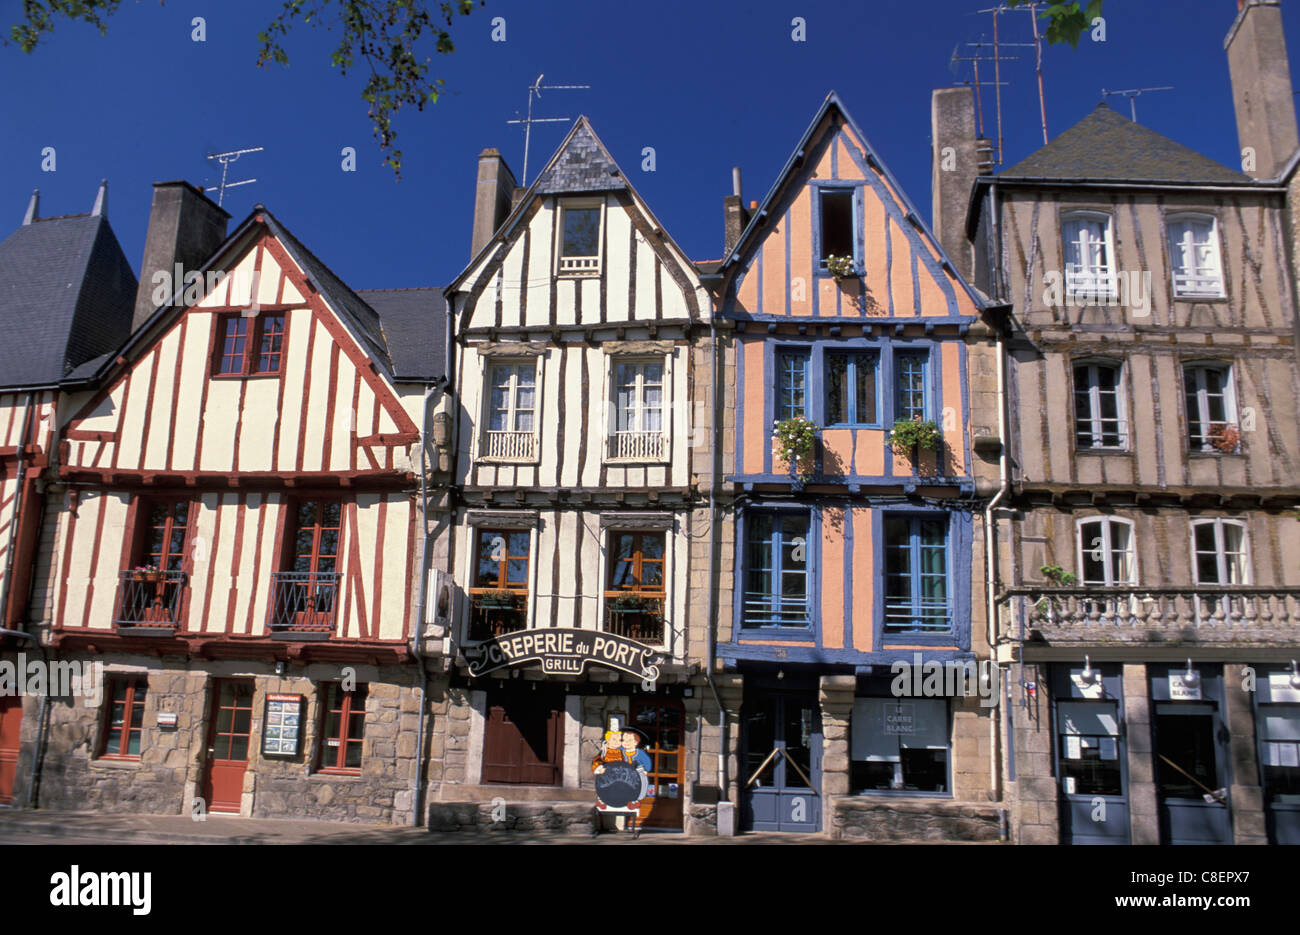 Wood framed, Houses, Vannes, Brittany, France, Europe, half-timbered - Stock Image